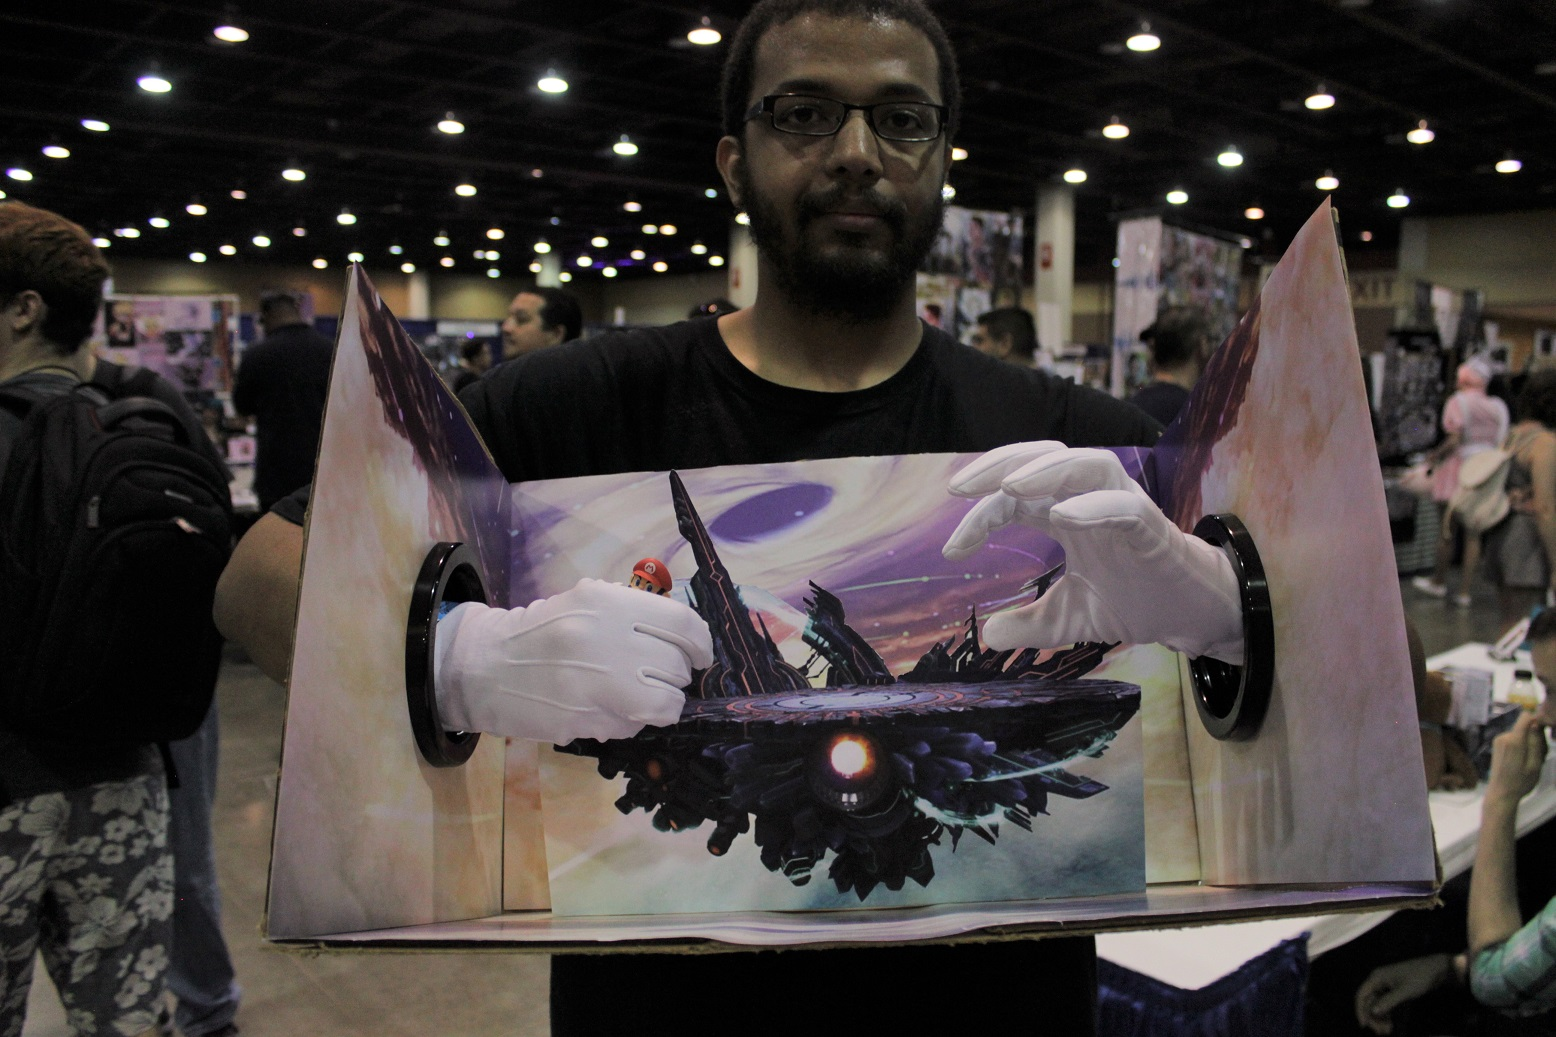 This Master Hand cosplayer holds the whole Super Smash Bros. stage in his grasp. Photo by Justin Franco.